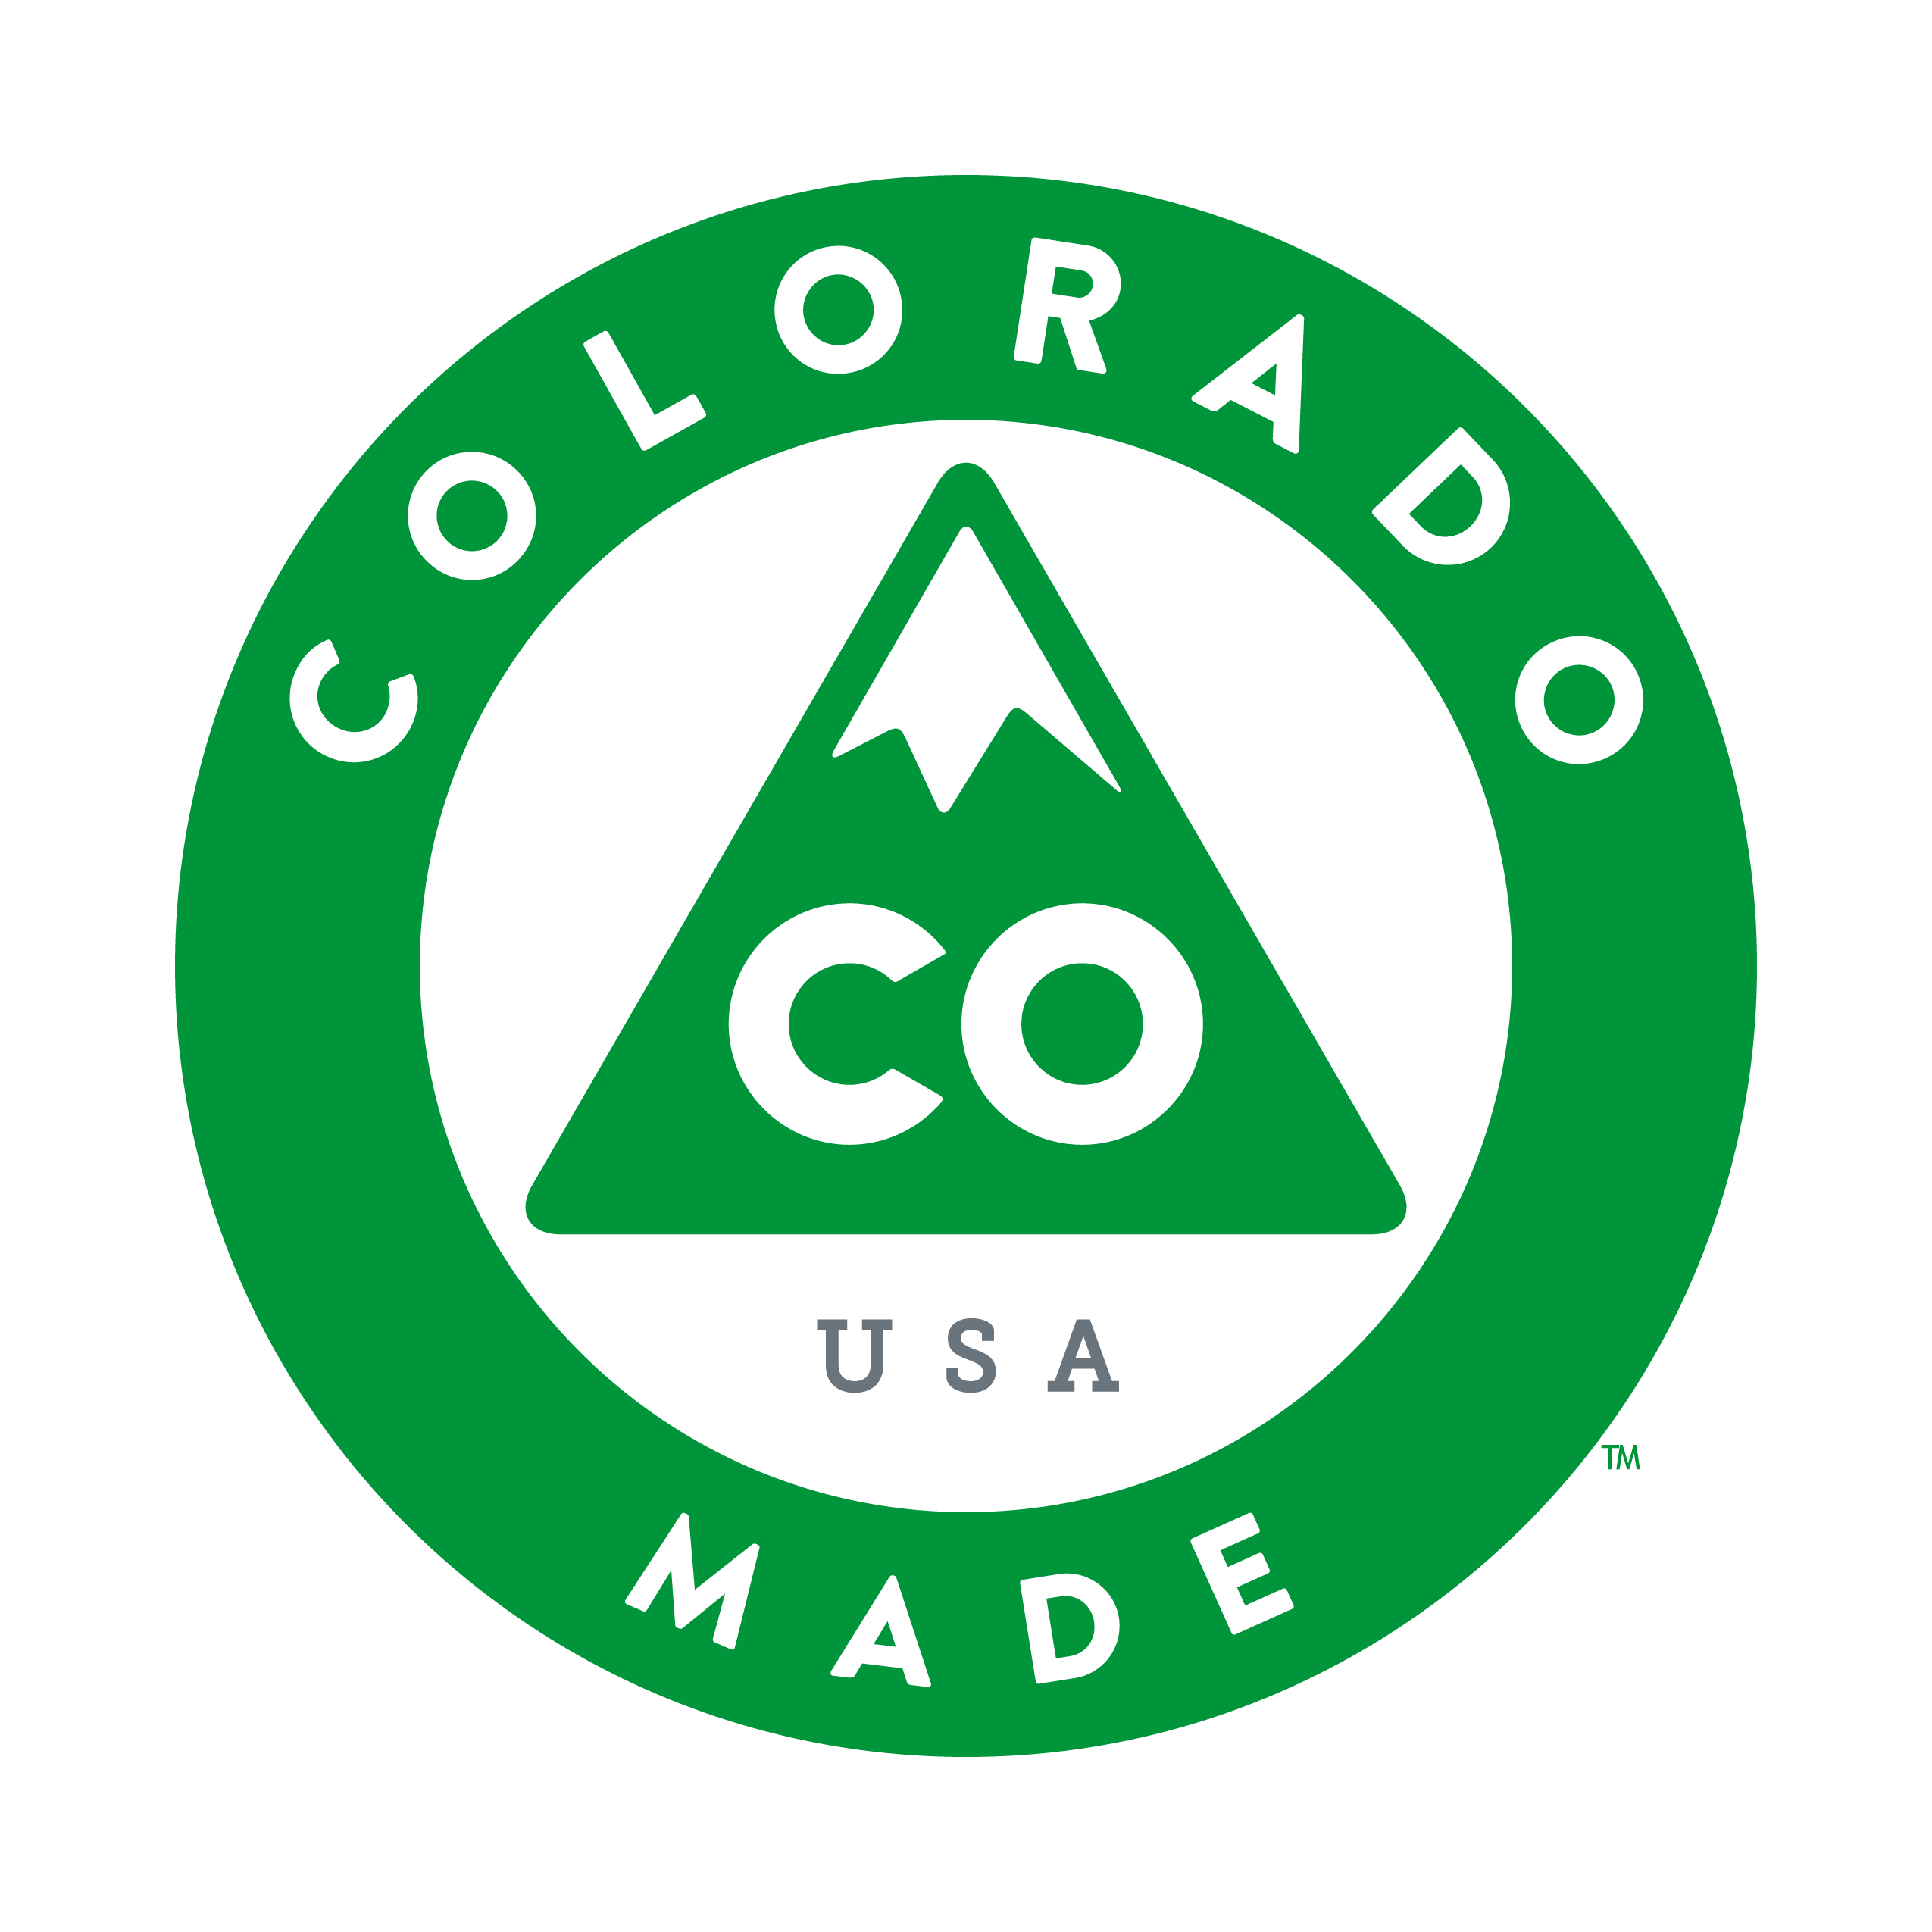 Pro Board Racks - Made in Colorado